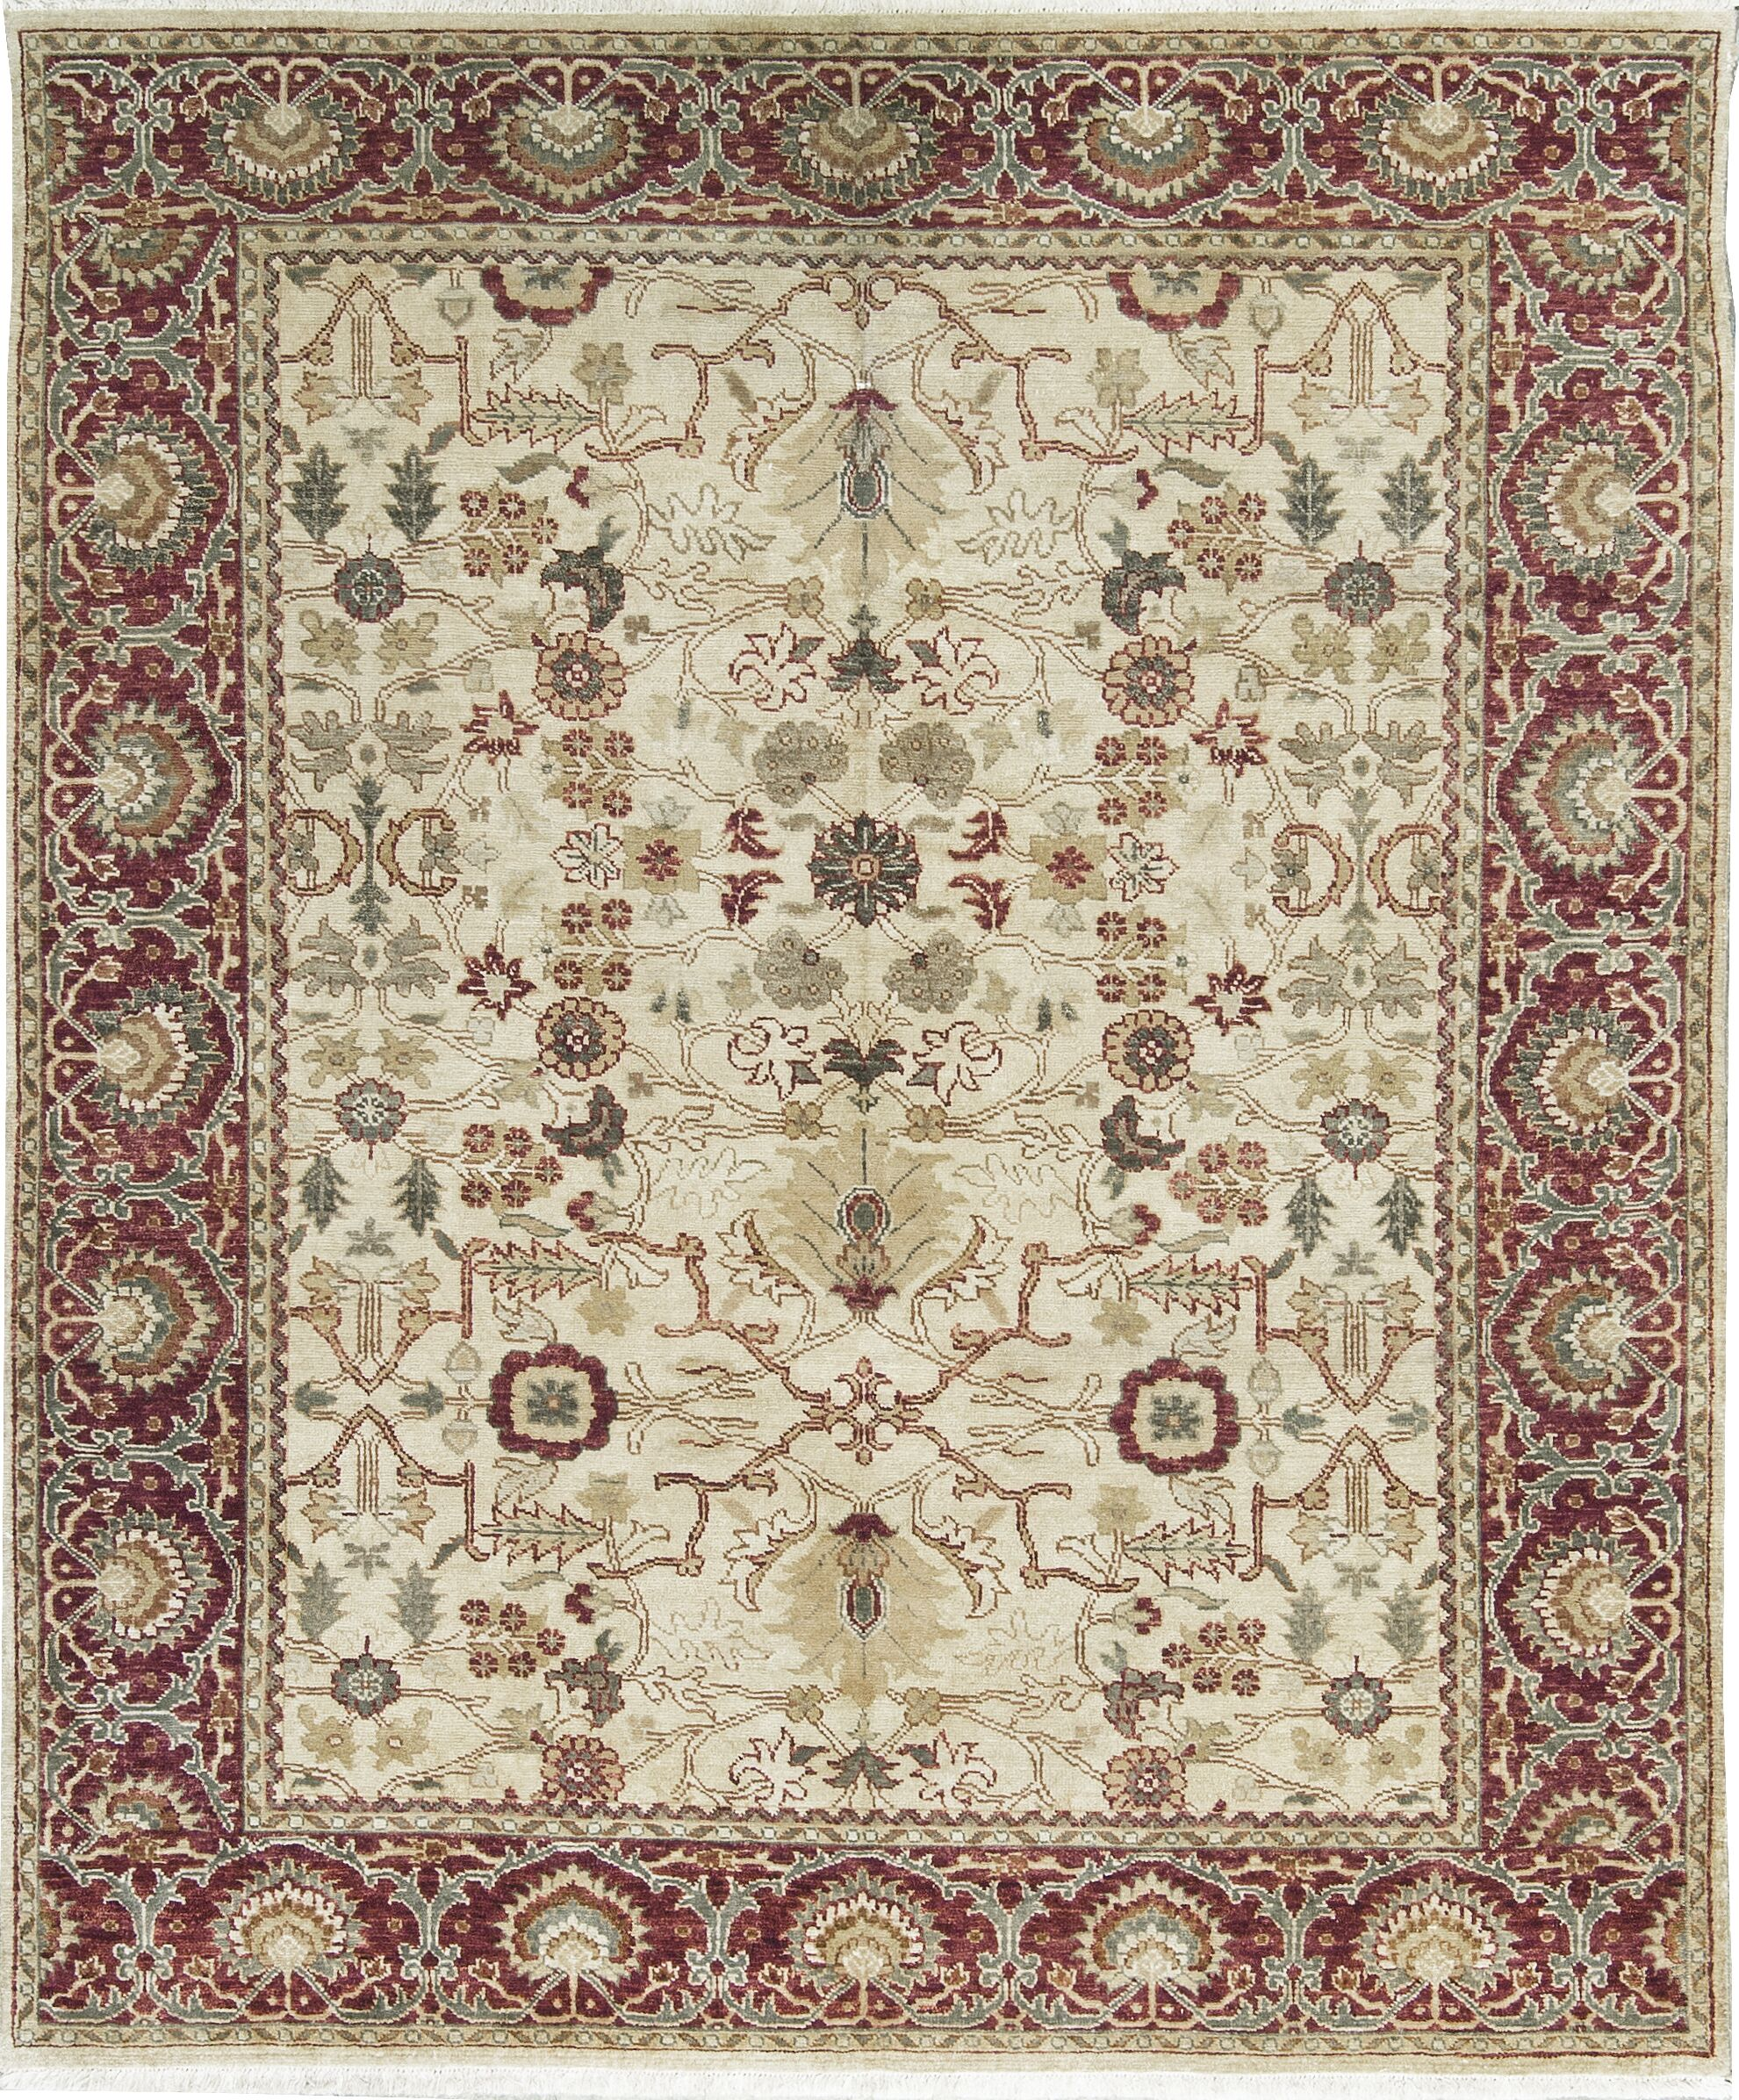 Templeton One-of-a-Kind Hand-Knotted Wool Beige Area Rug